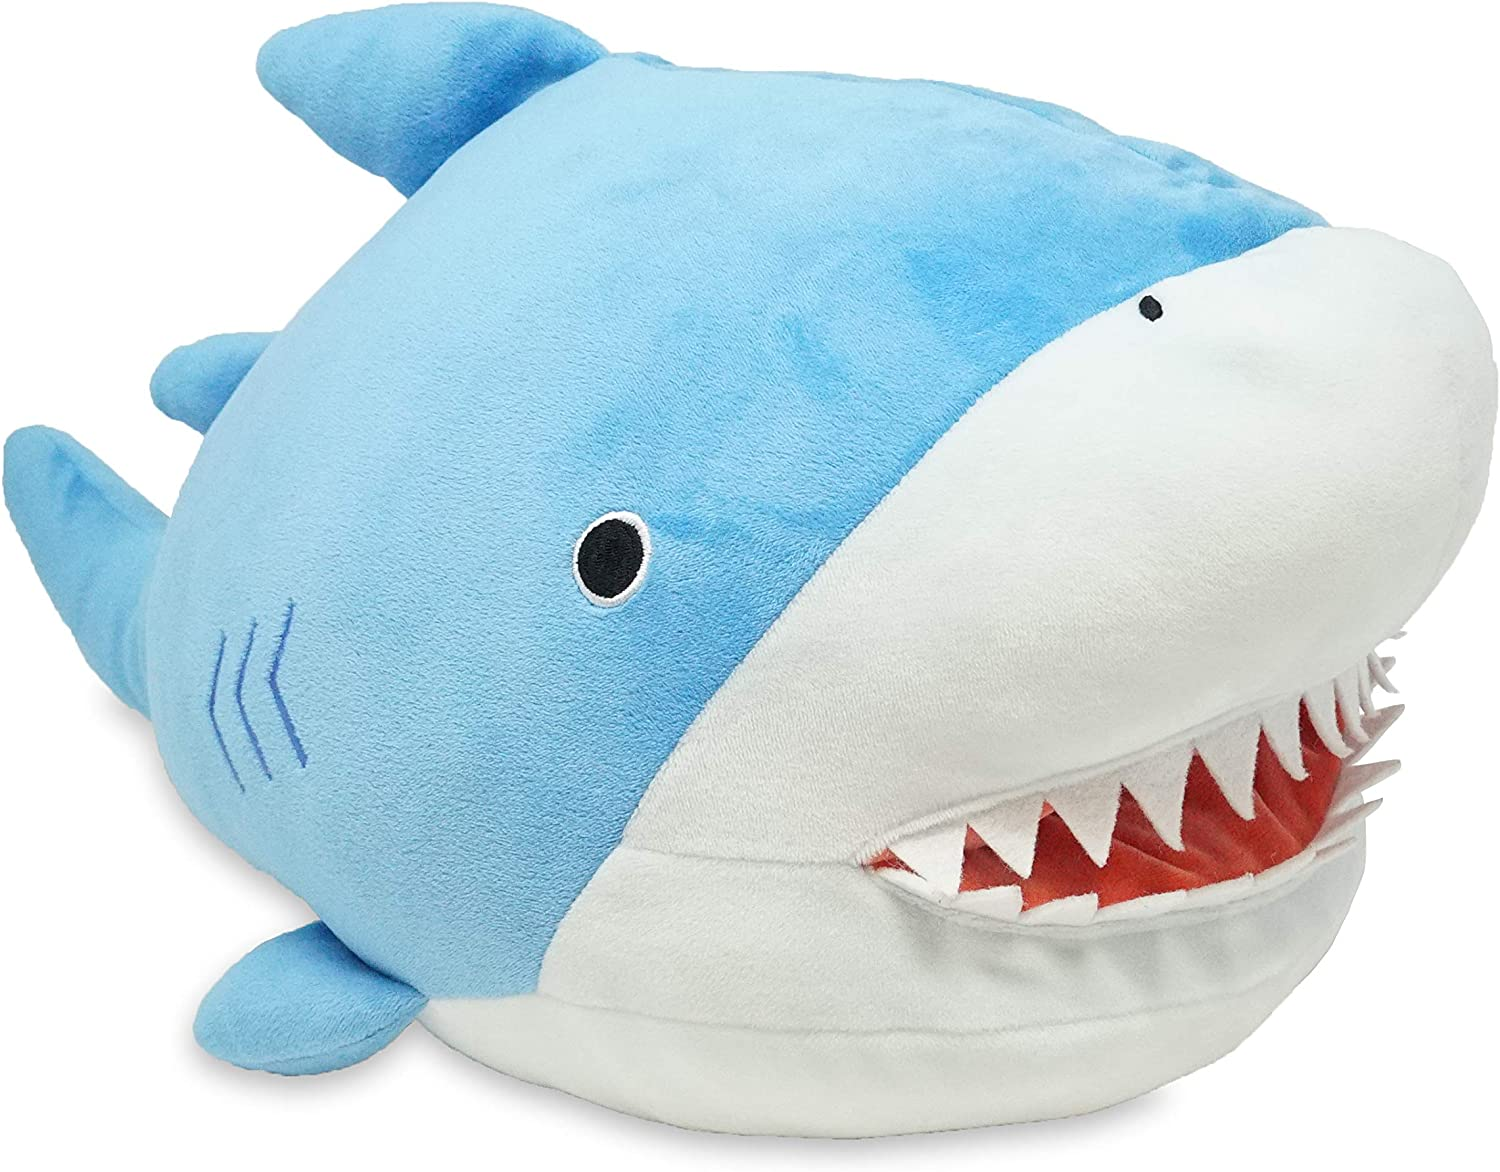 Cuddle Barn Cubby Tubbies Shark - Squishy Soft Shark Stuffed Animal Plush Toy with Large Mouth Pocket, 17""